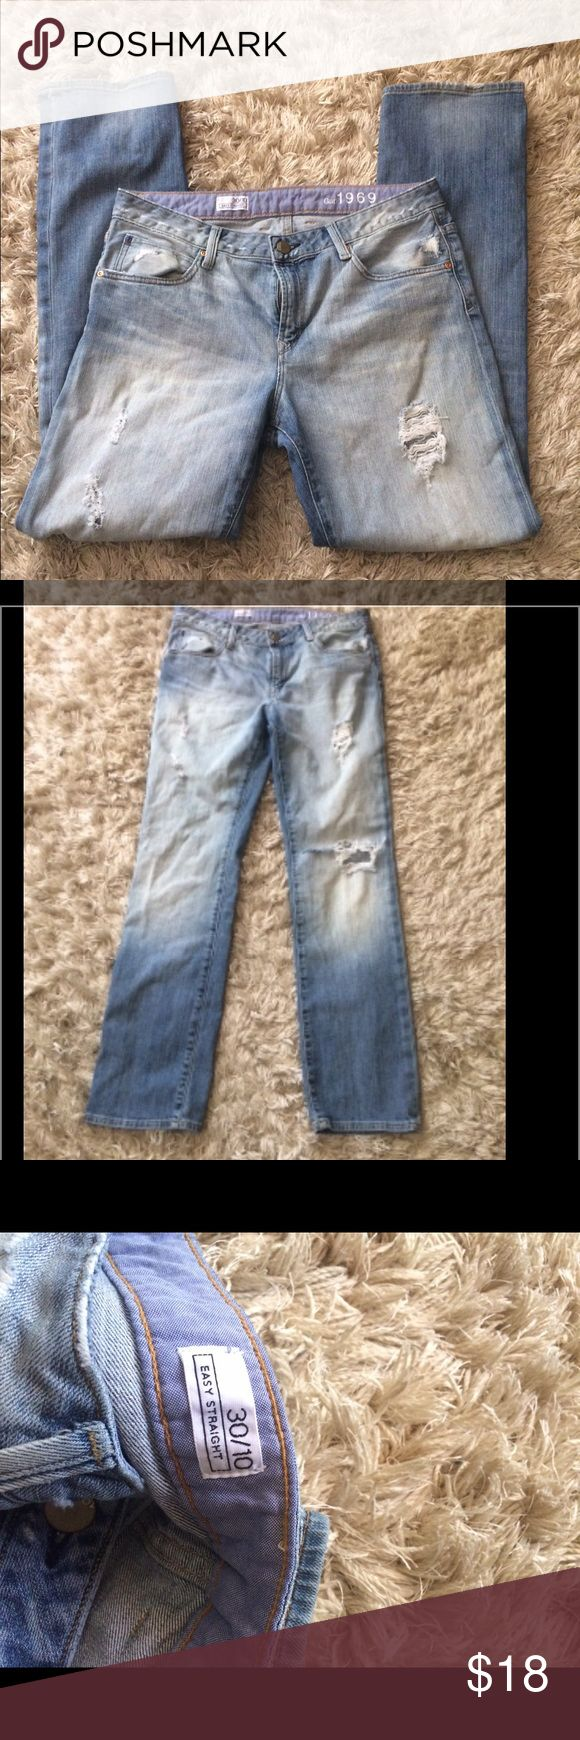 👖 gap women's jeans size30 Very comfortable gap jeans. Ripped up higher on waist. GAP Jeans Straight Leg